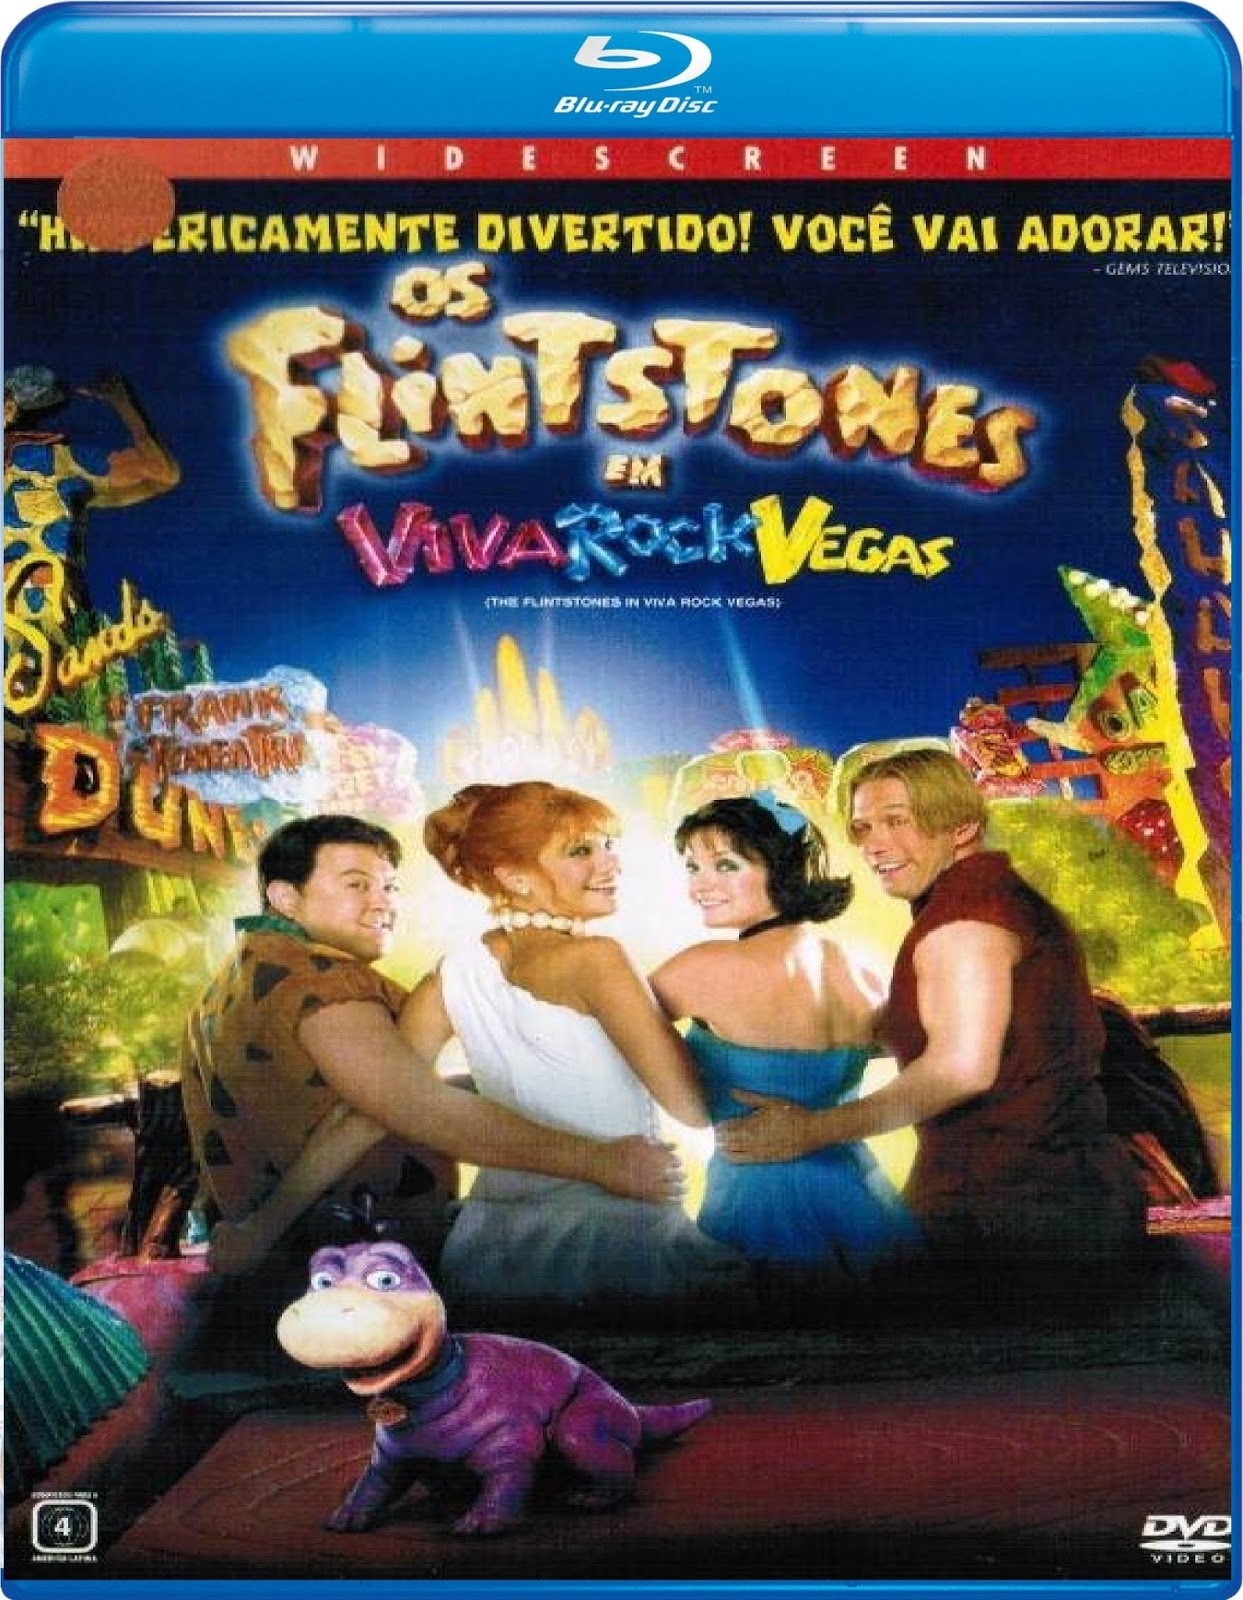 Filme Os Flintstones within baixehd turbo: os flintstones em viva rock vegas bluray 720p dual